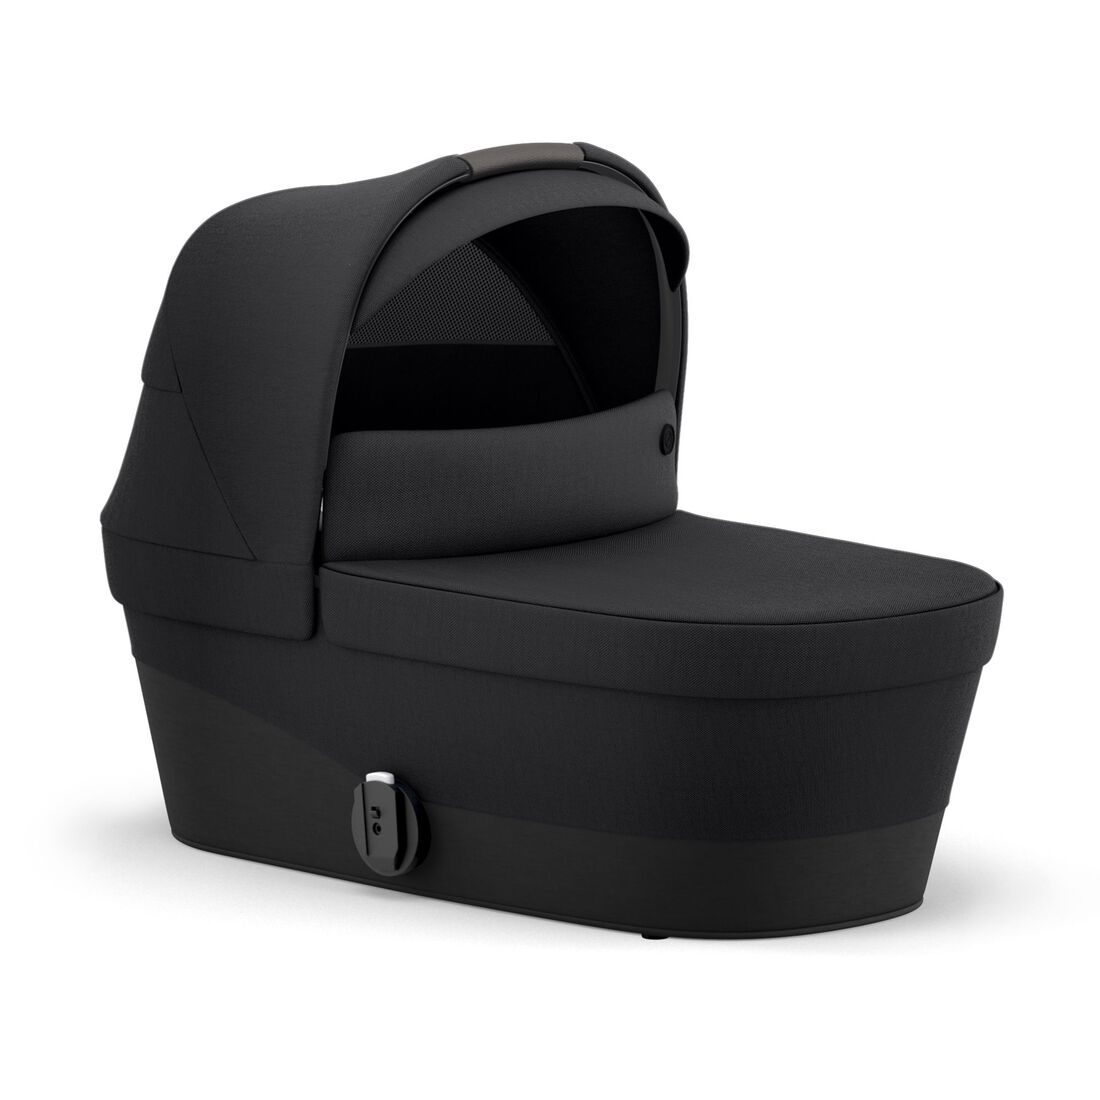 CYBEX Gazelle S Cot - Deep Black in Deep Black large Bild 1